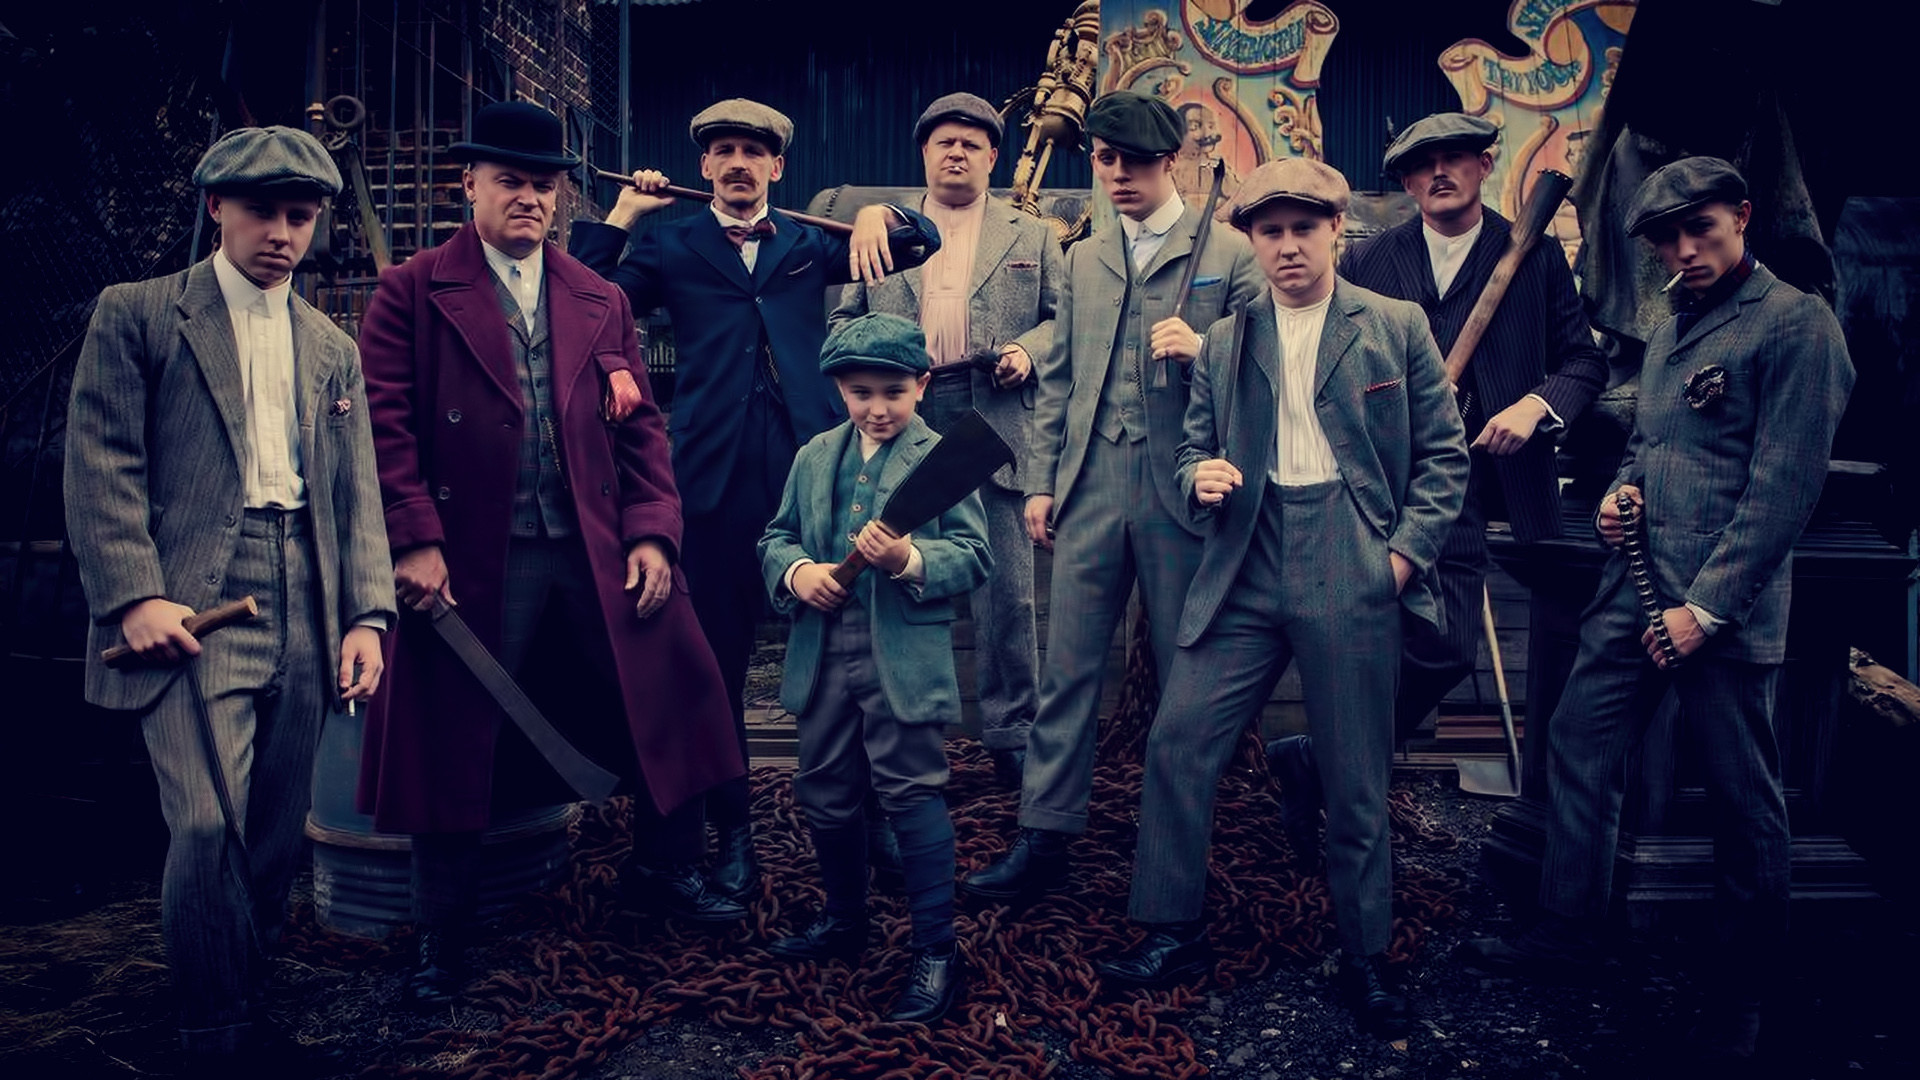 peaky blinders series 3 premiere date 'peaky blinders' season 3 debuts may 6 on bbc2 the american premiere of season 3 is set for may 31 on netflix our subscribers will be automatically notified about the release date.